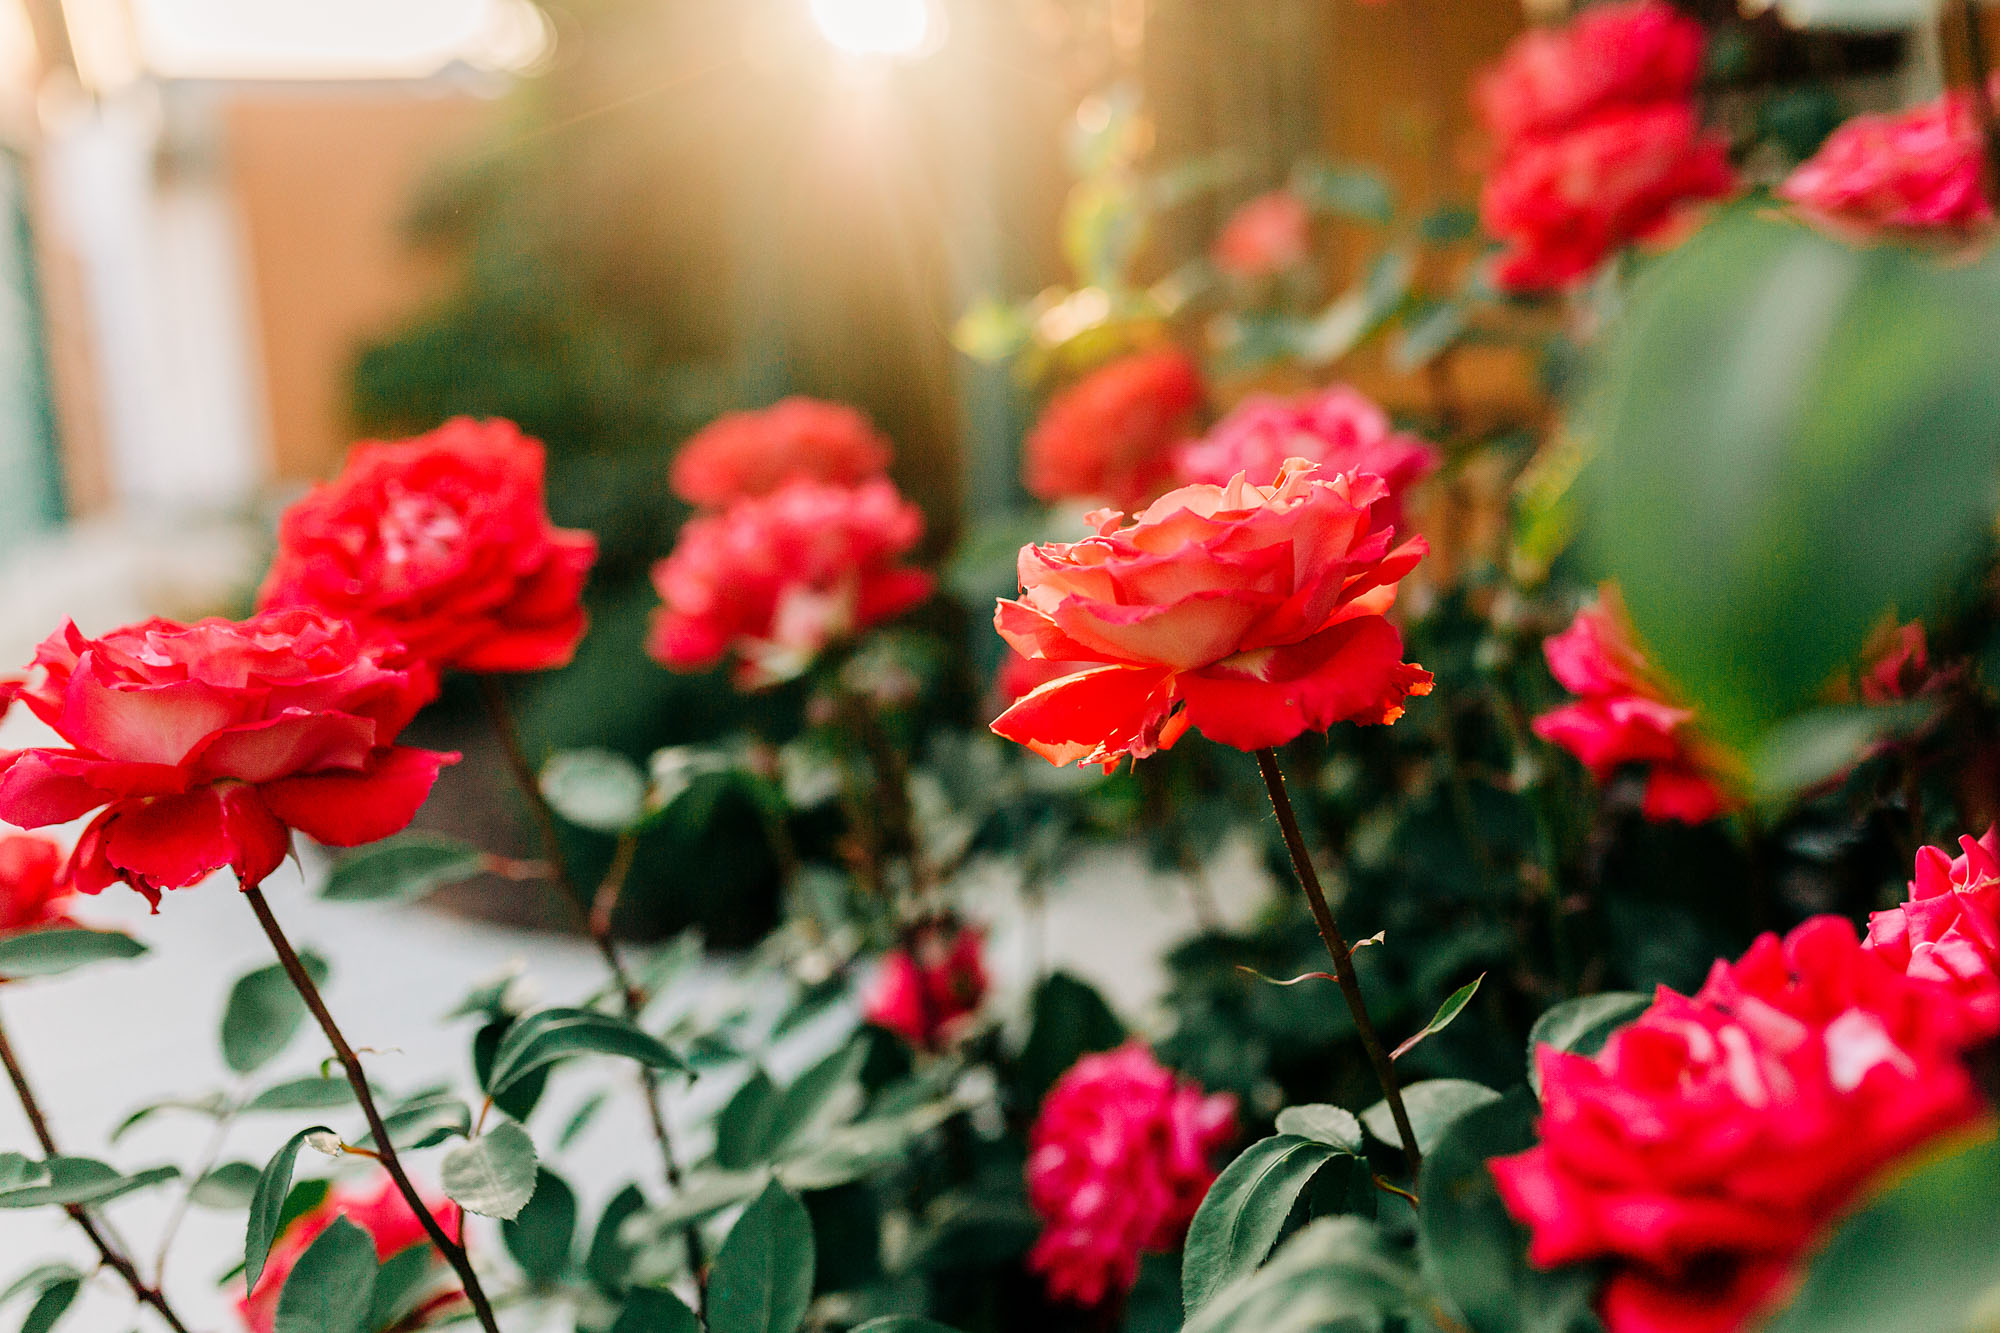 Backyard details are captured of roses during an in-home family photo session with Amy Wright Photography.